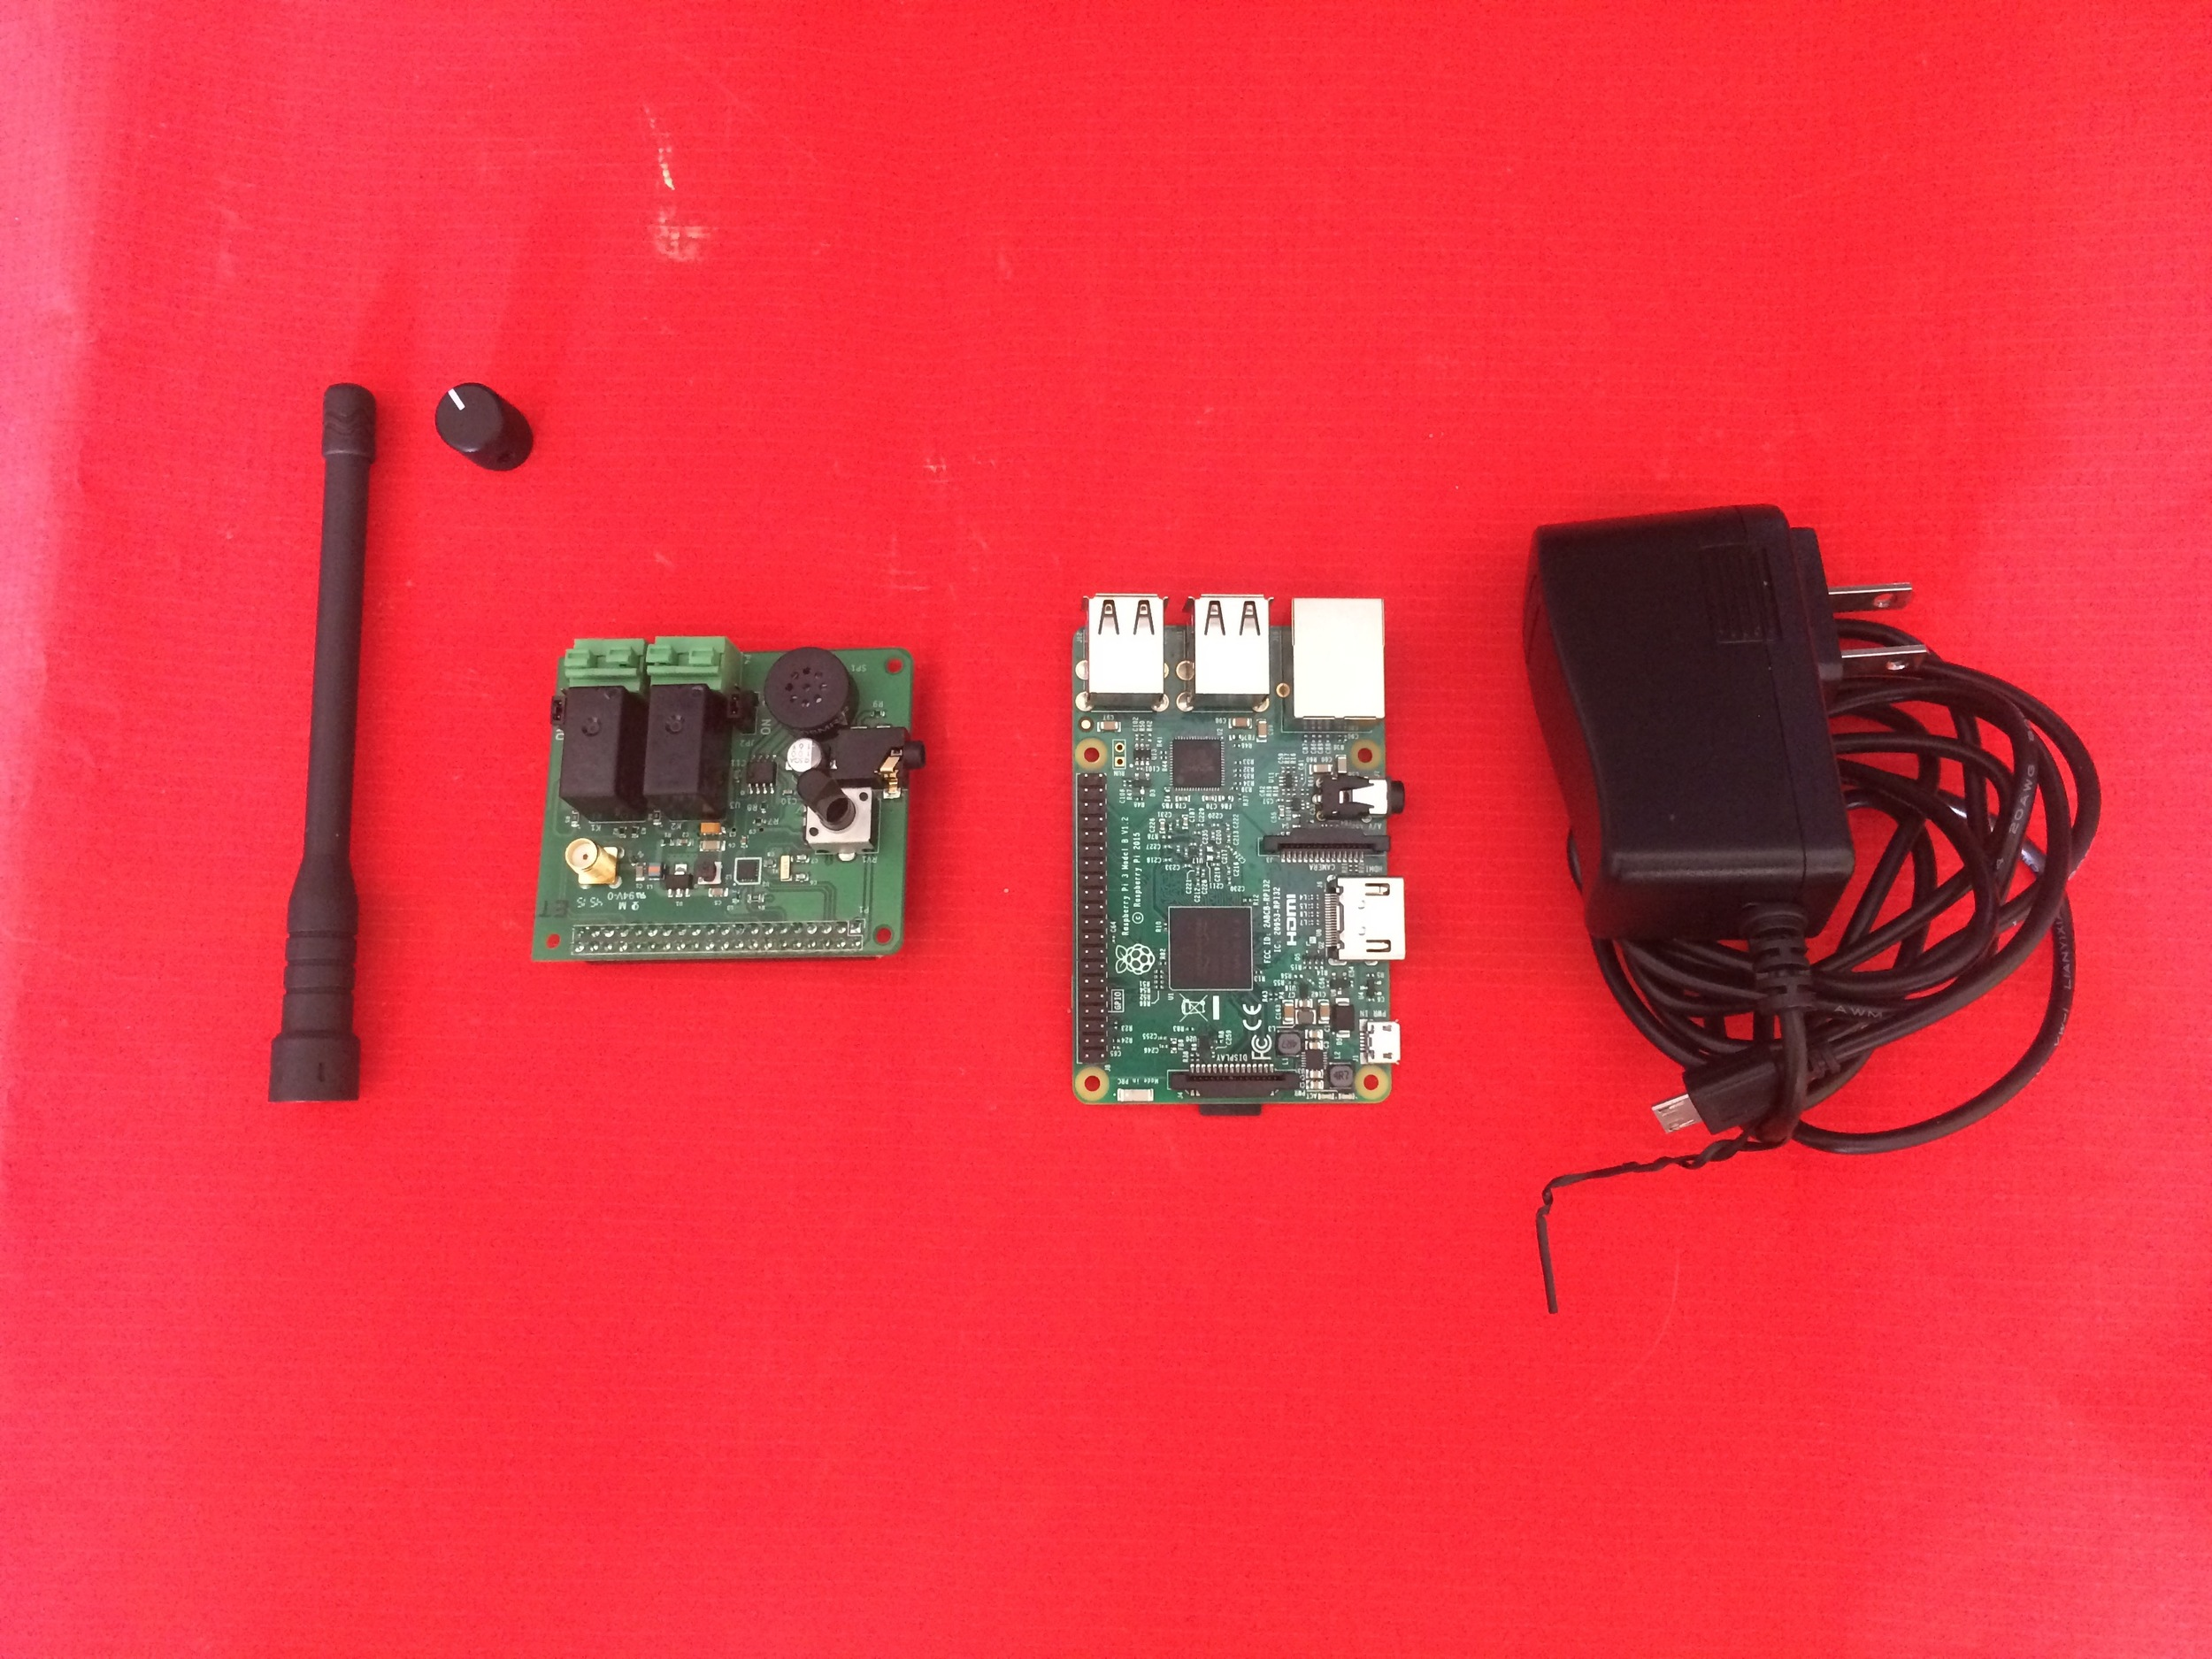 From Left to Right: SMA Wideband Antenna, Volume Knob, NWR Receiver/SAME Decoder and Power Adapter